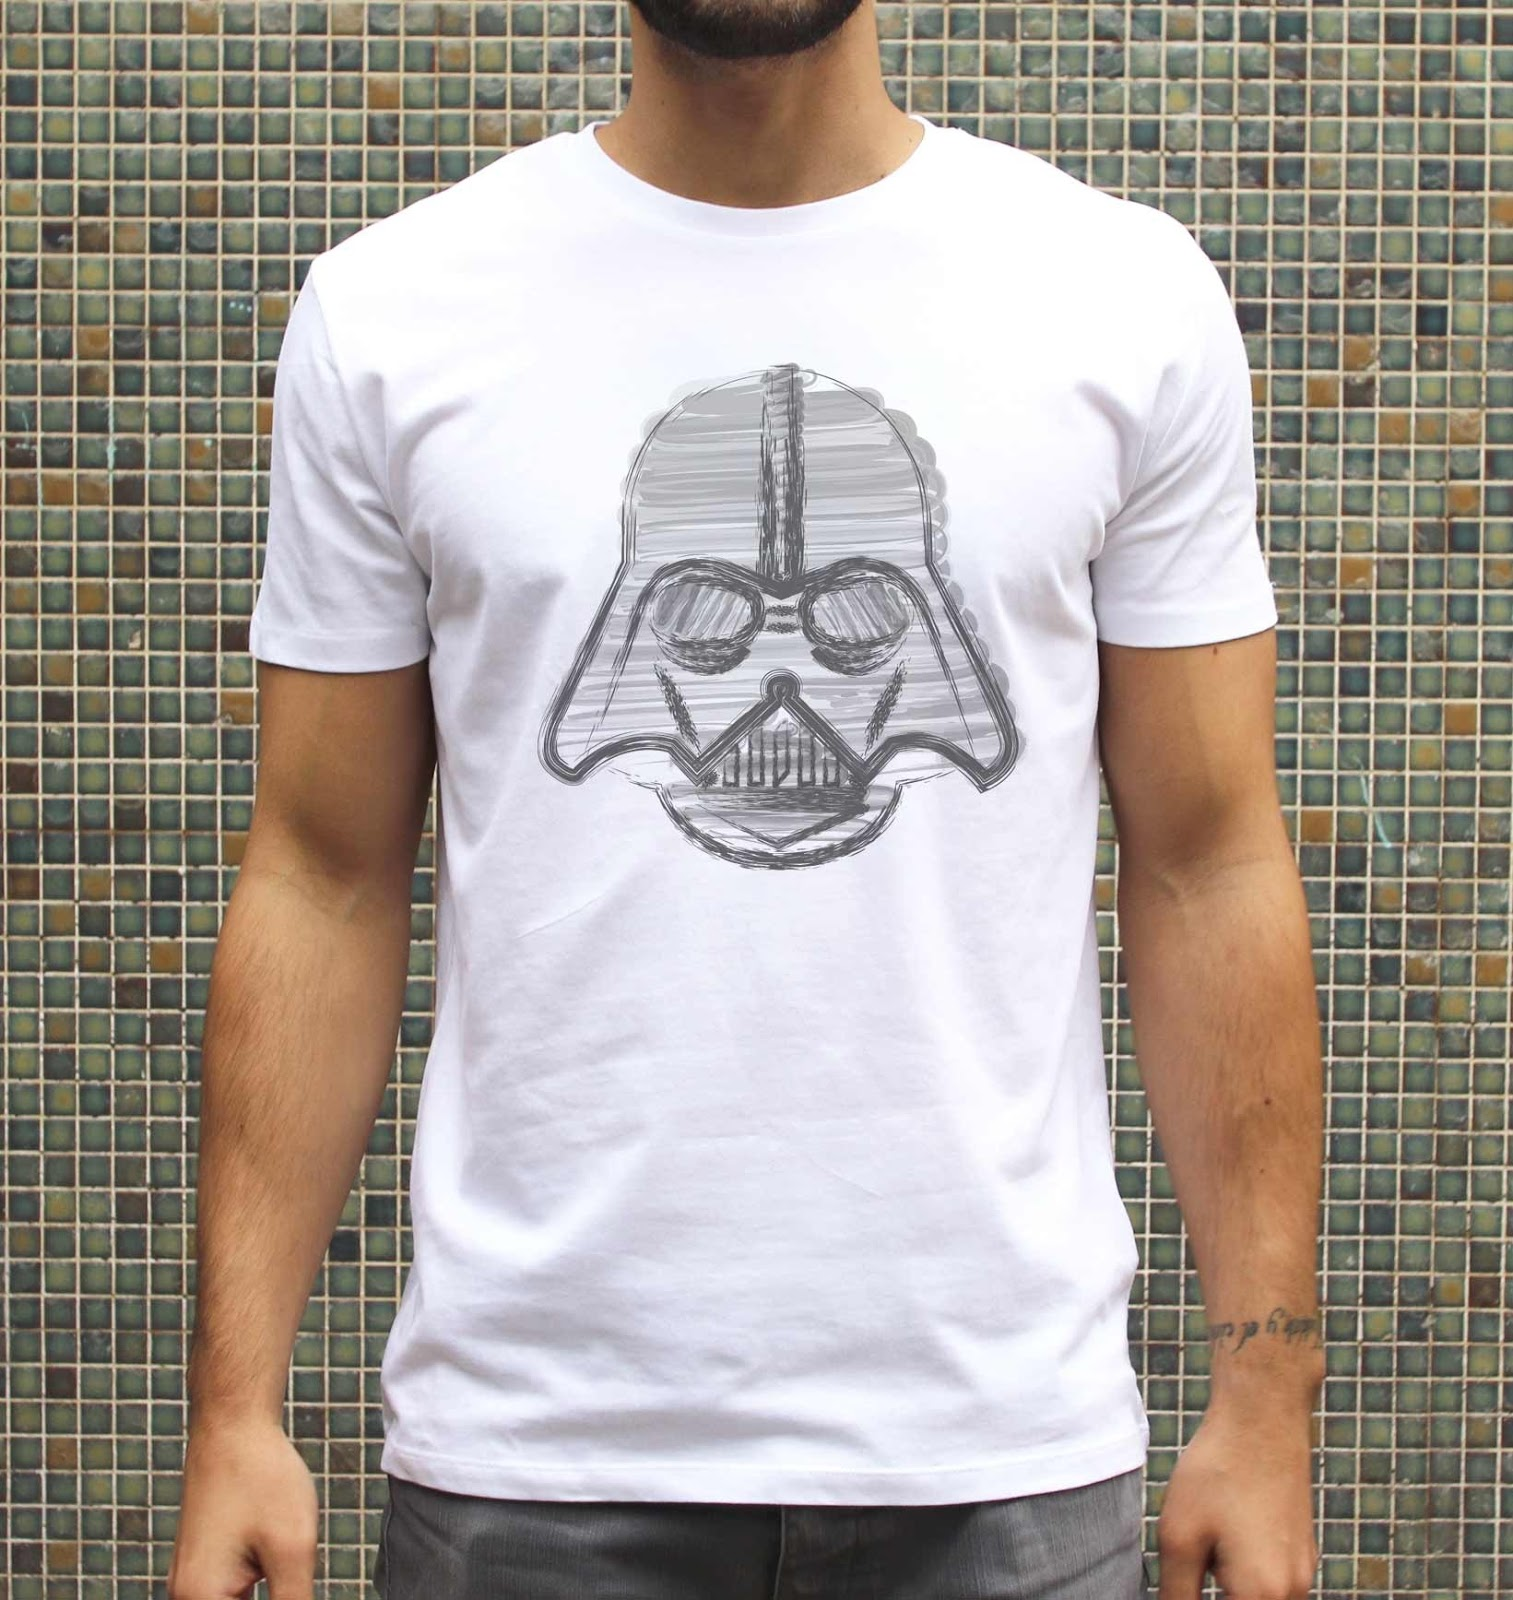 https://grafitee.co/tshirts/darth-vader-tshirt